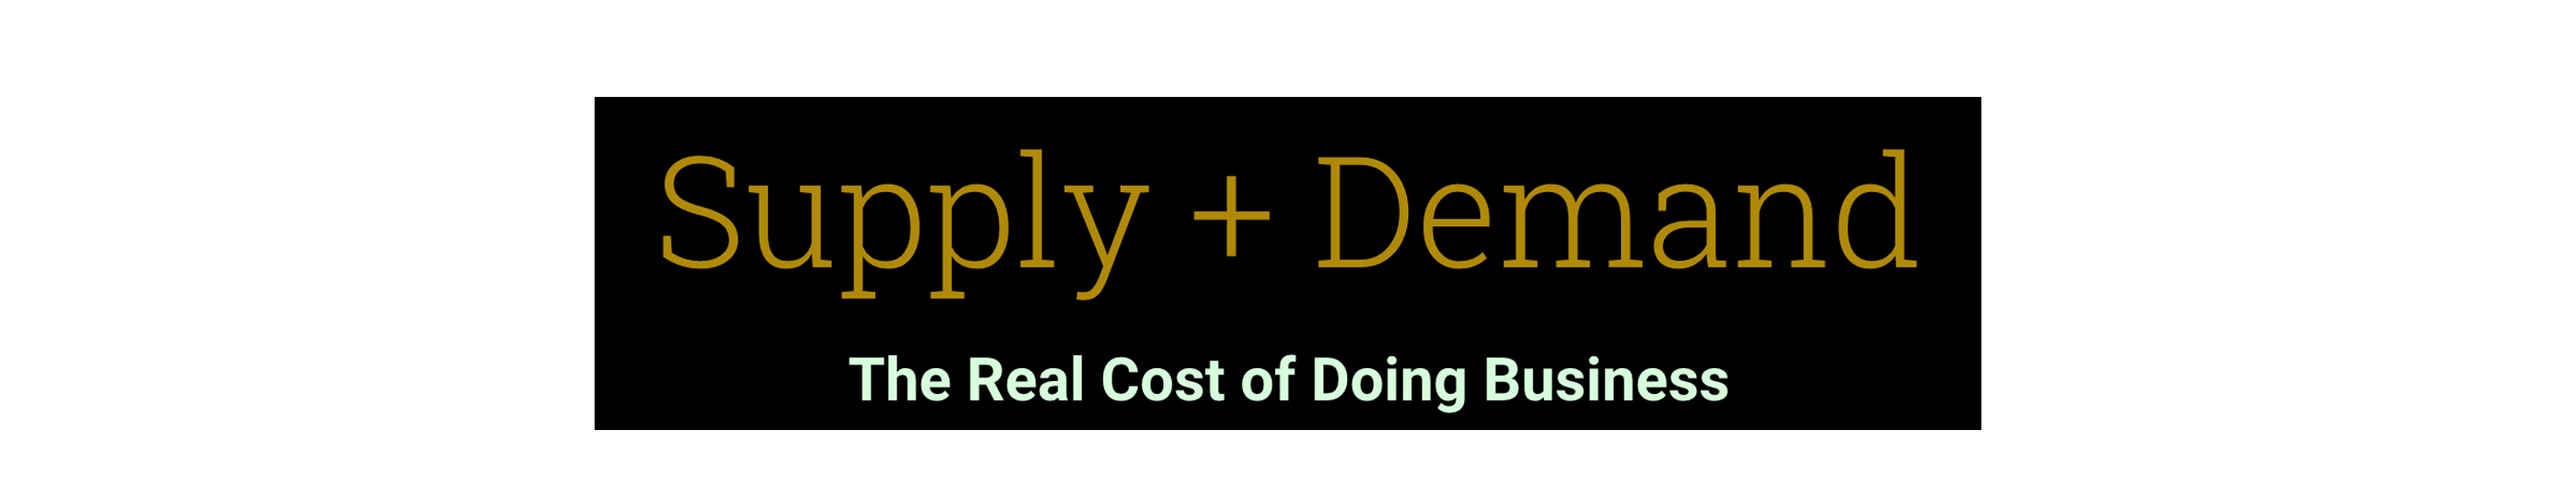 Supply + Demand: The Real Cost of Doing Business